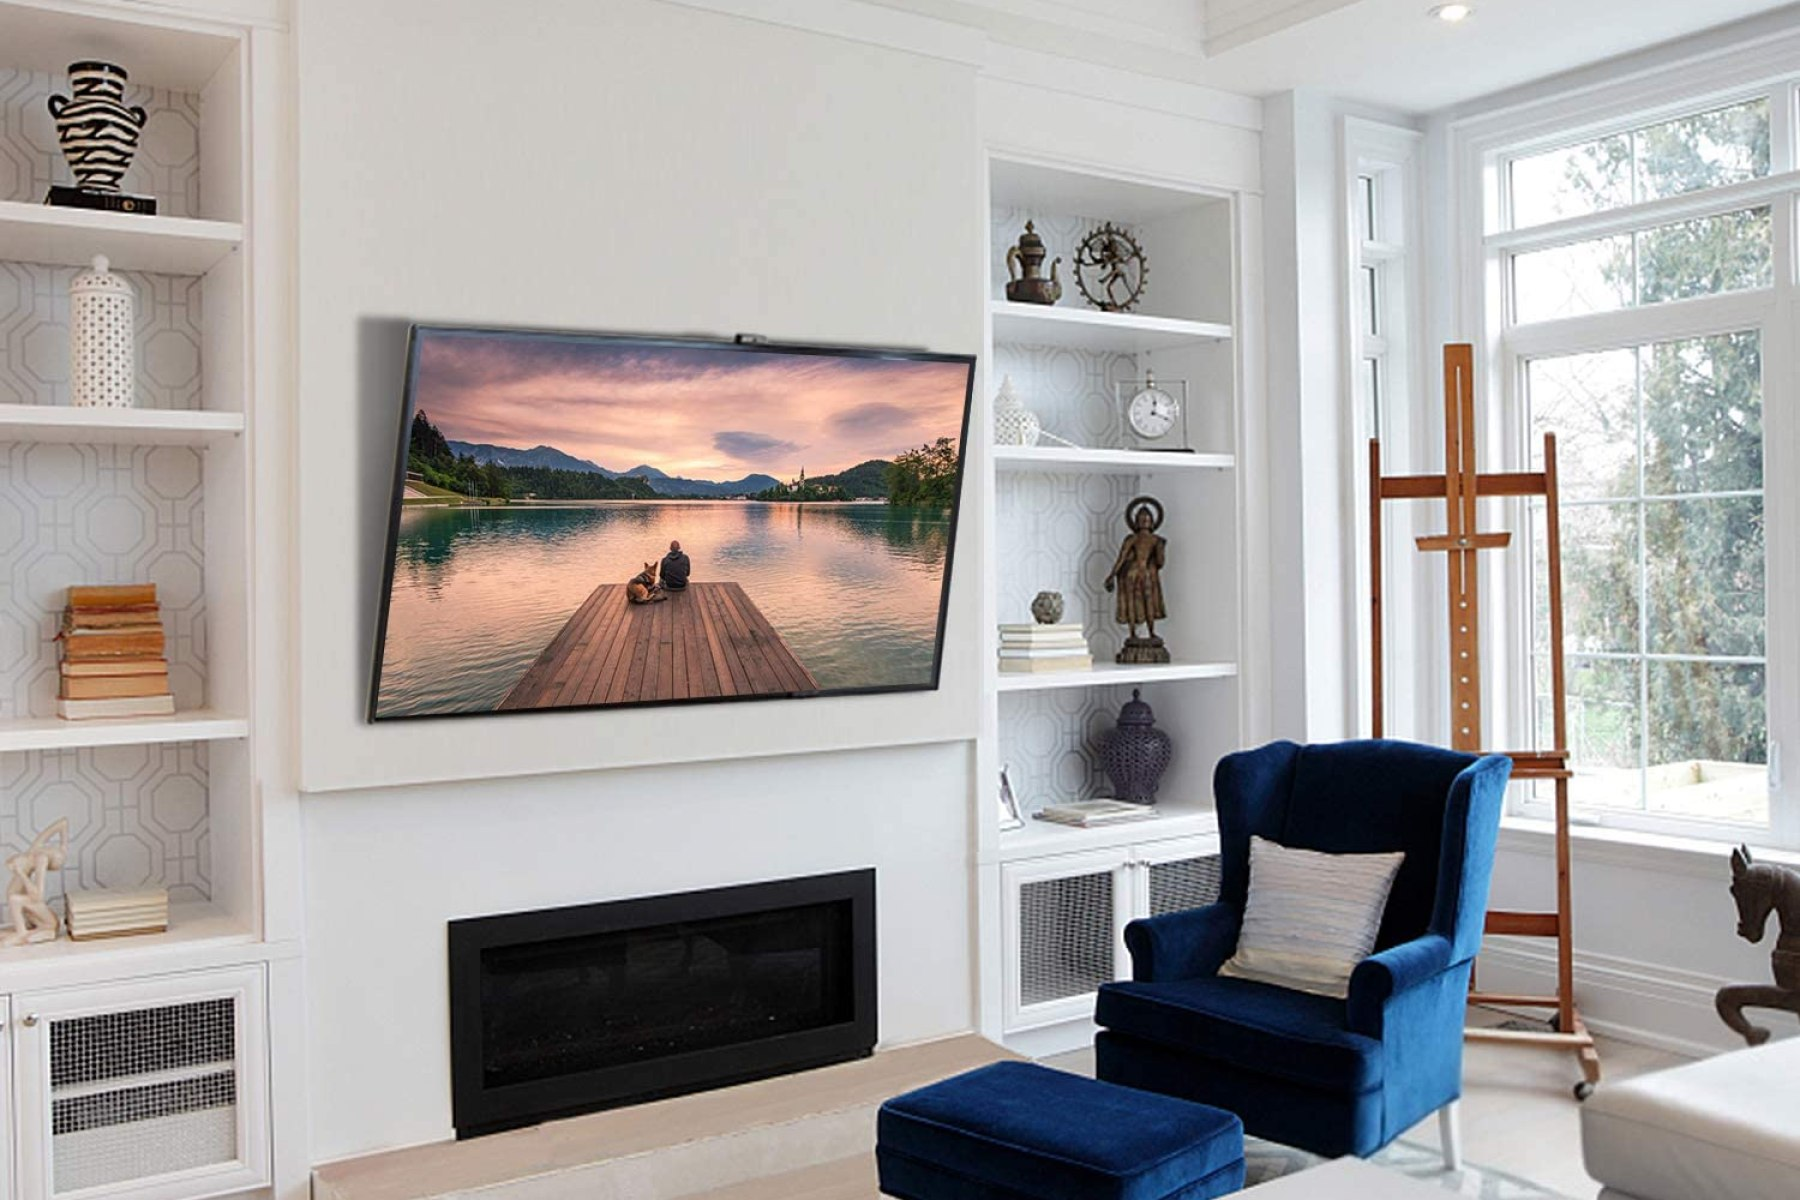 The Best Tv Mounts 2020 How To Mount And Display Your Tv On The Wall Rolling Stone